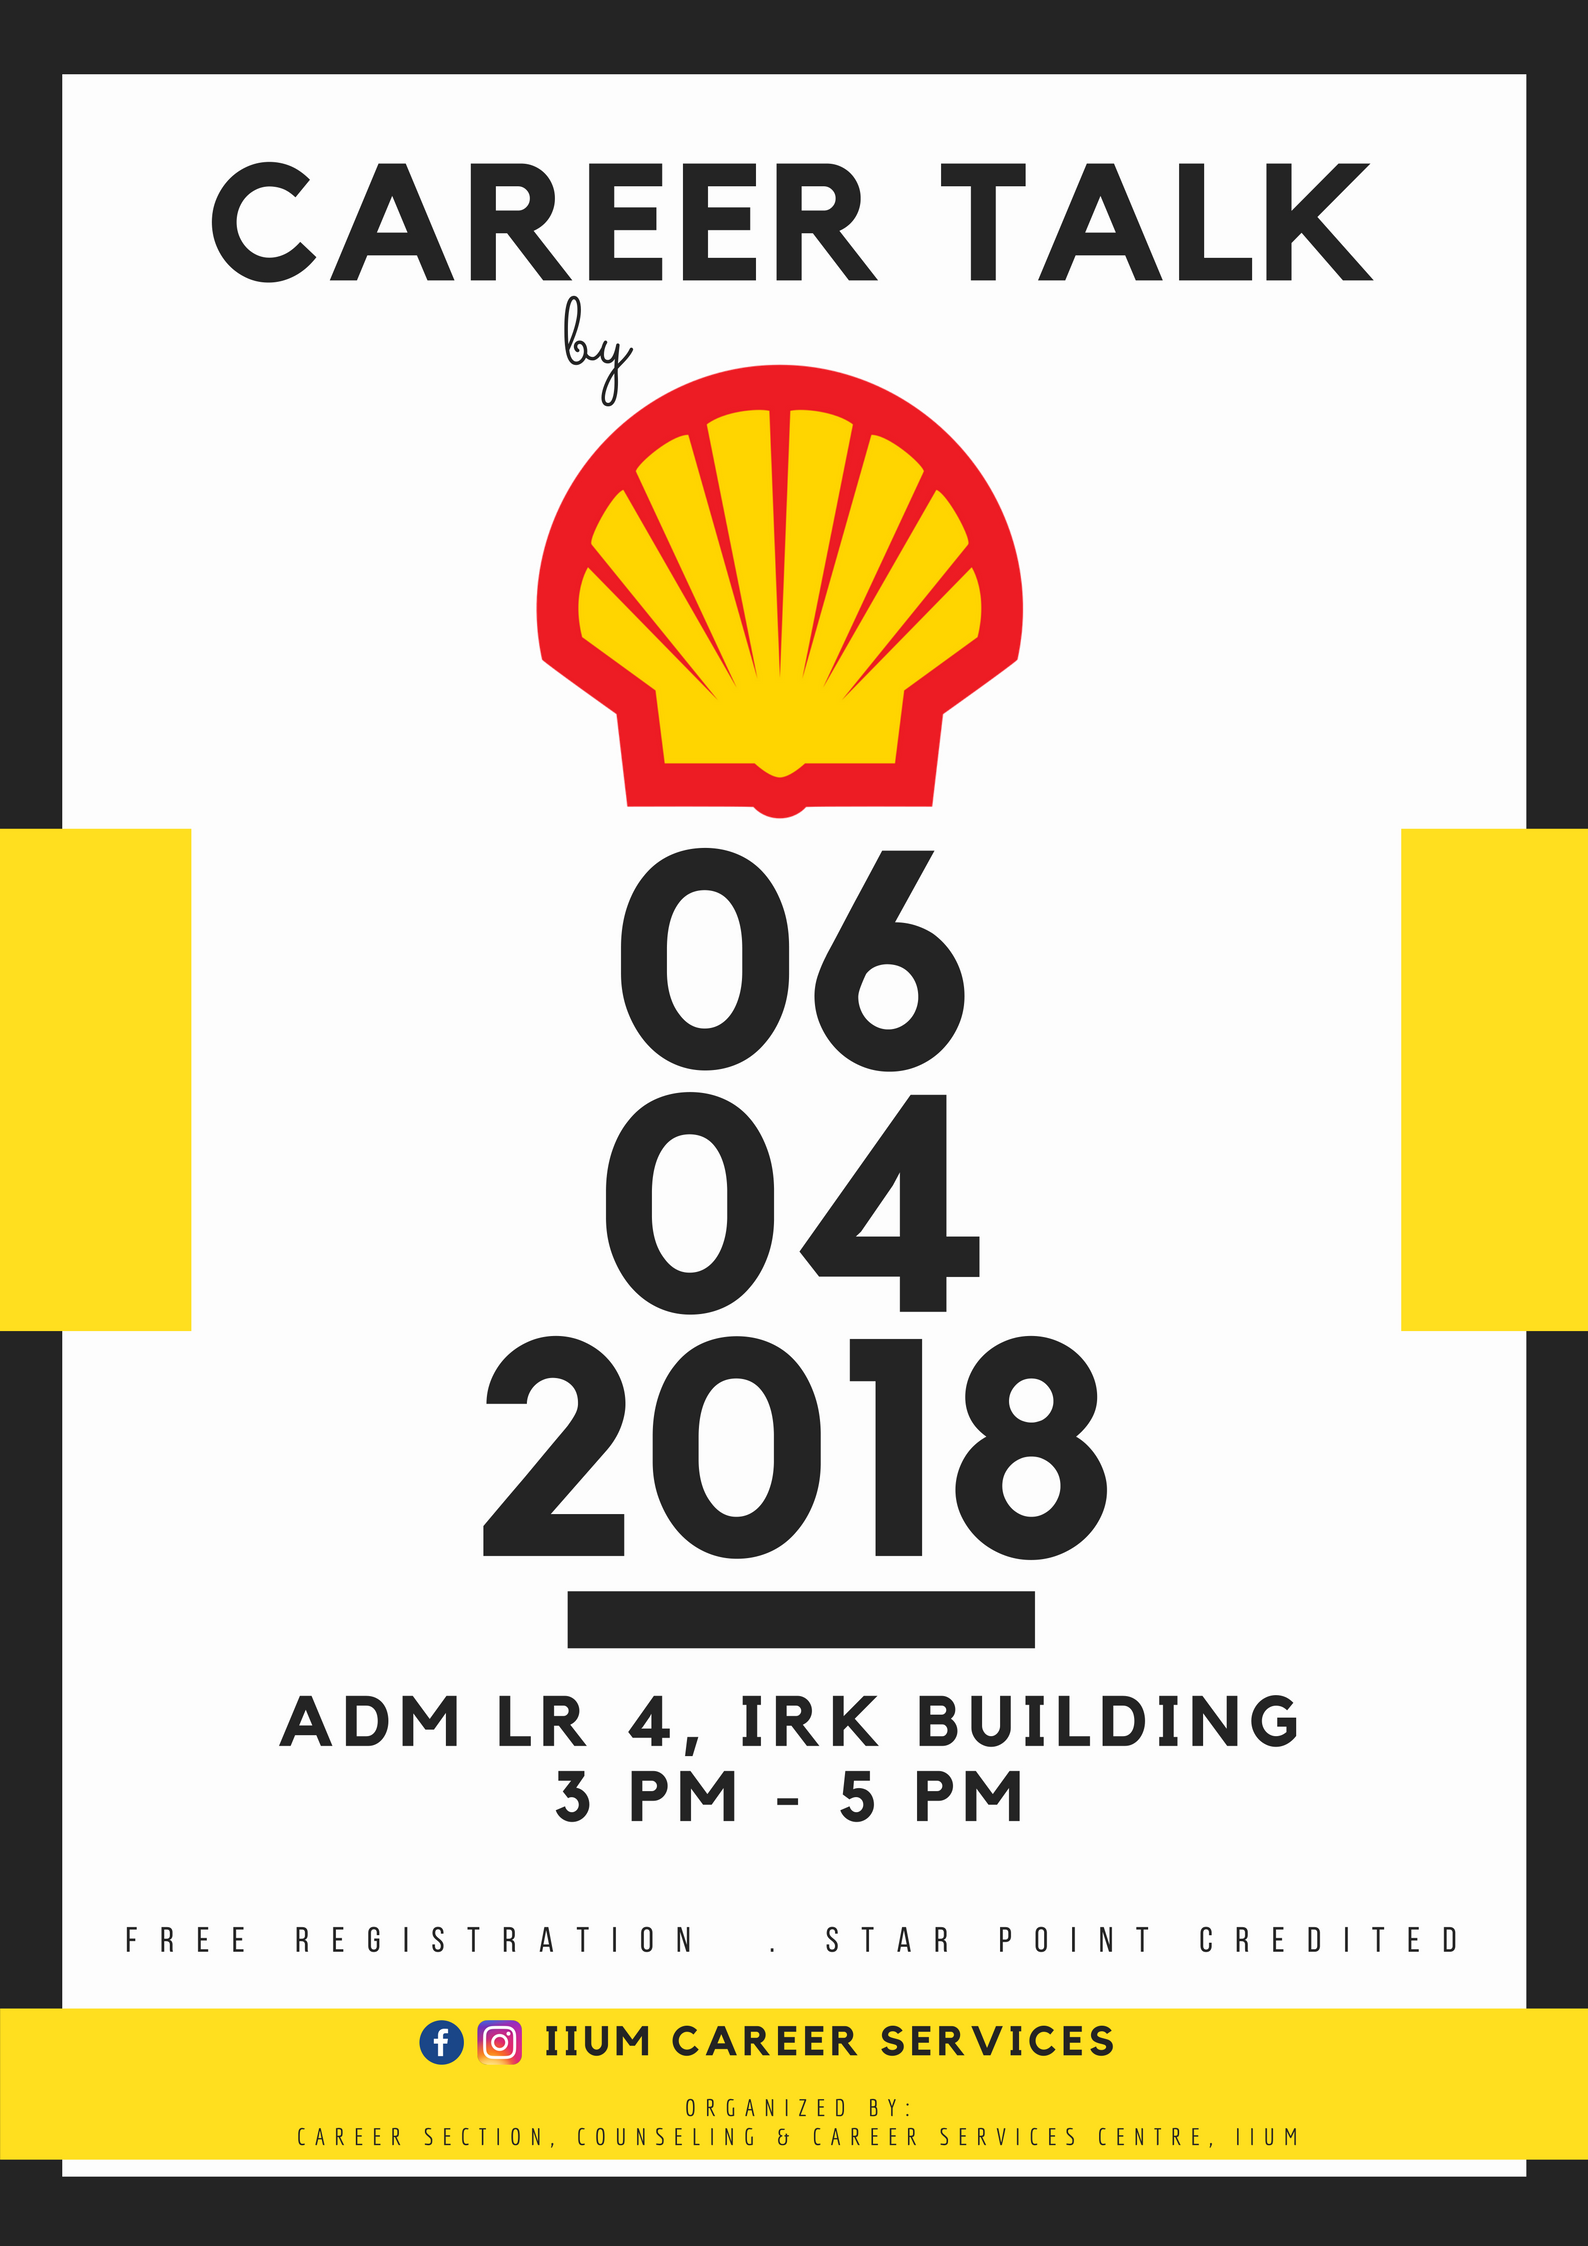 CAREER TALK BY SHELL